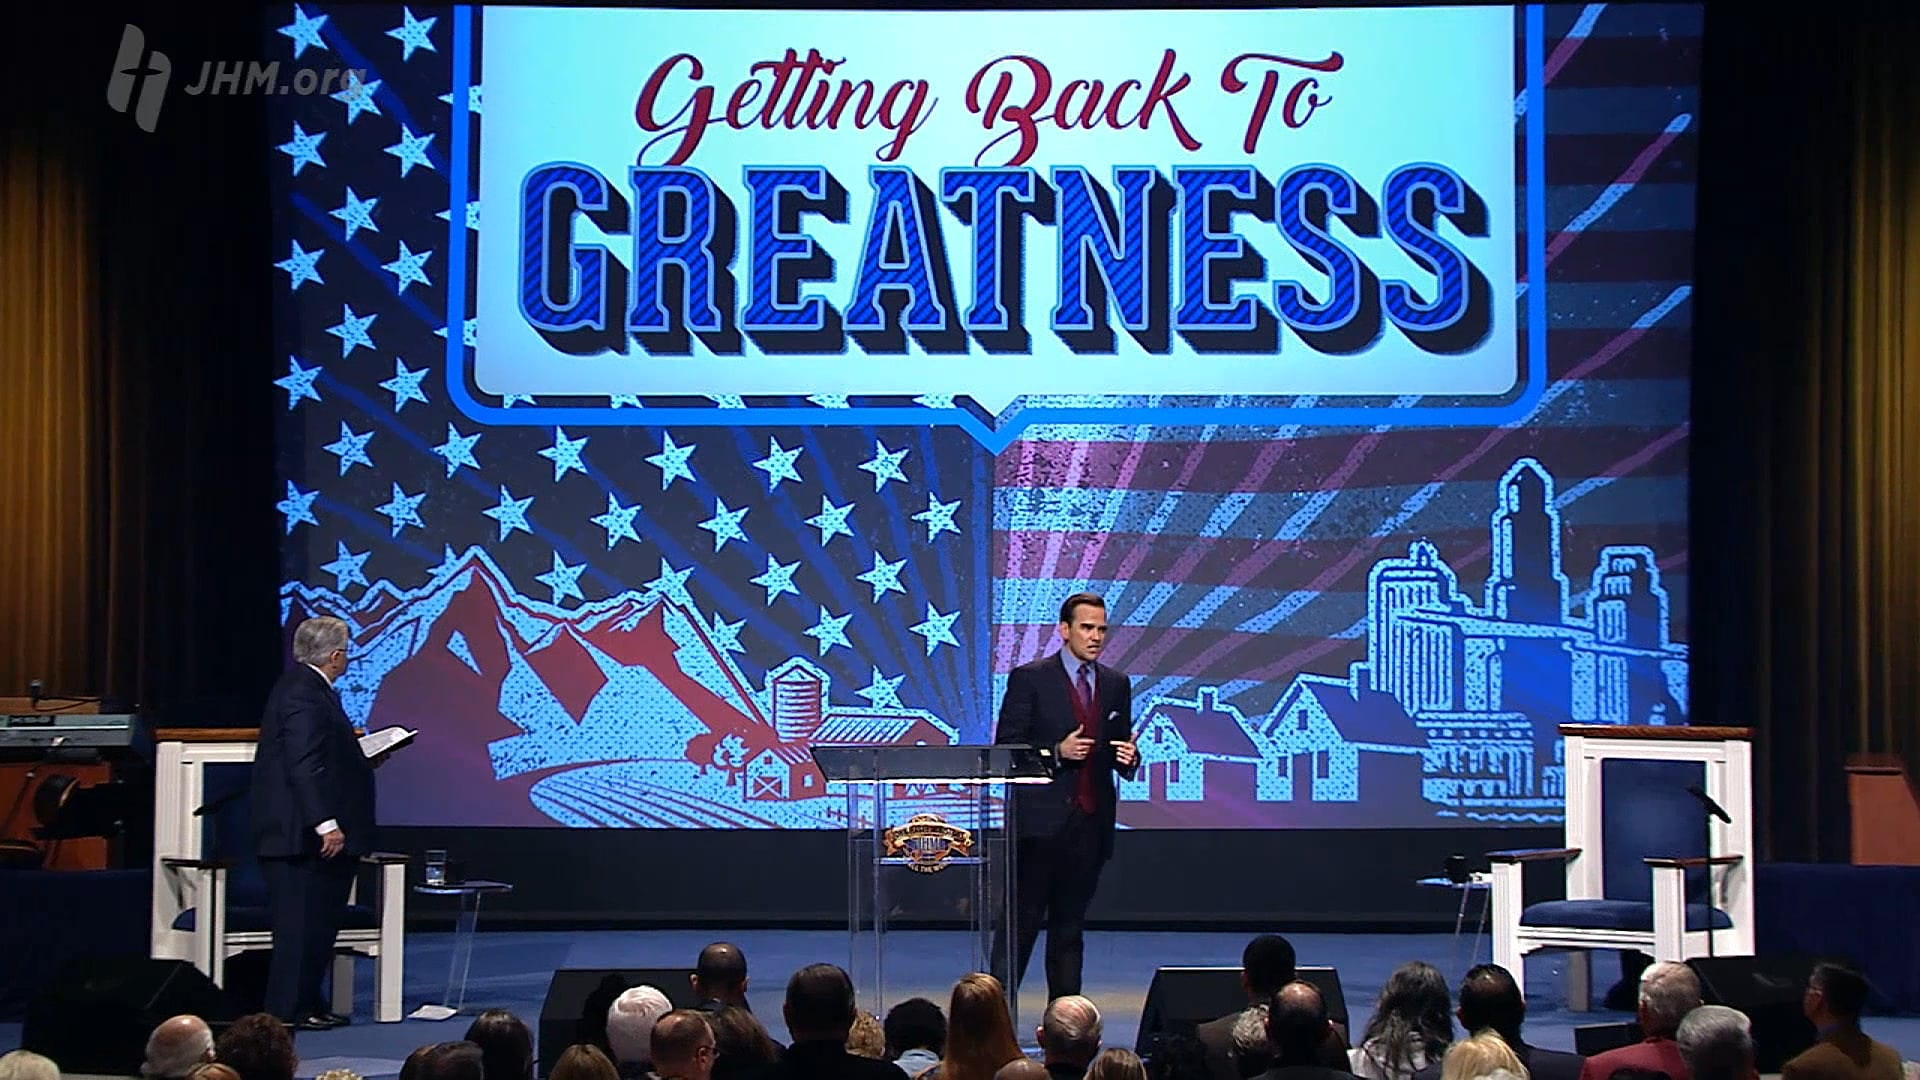 Watch The Difference: Matt Hagee | Getting Back To Greatness